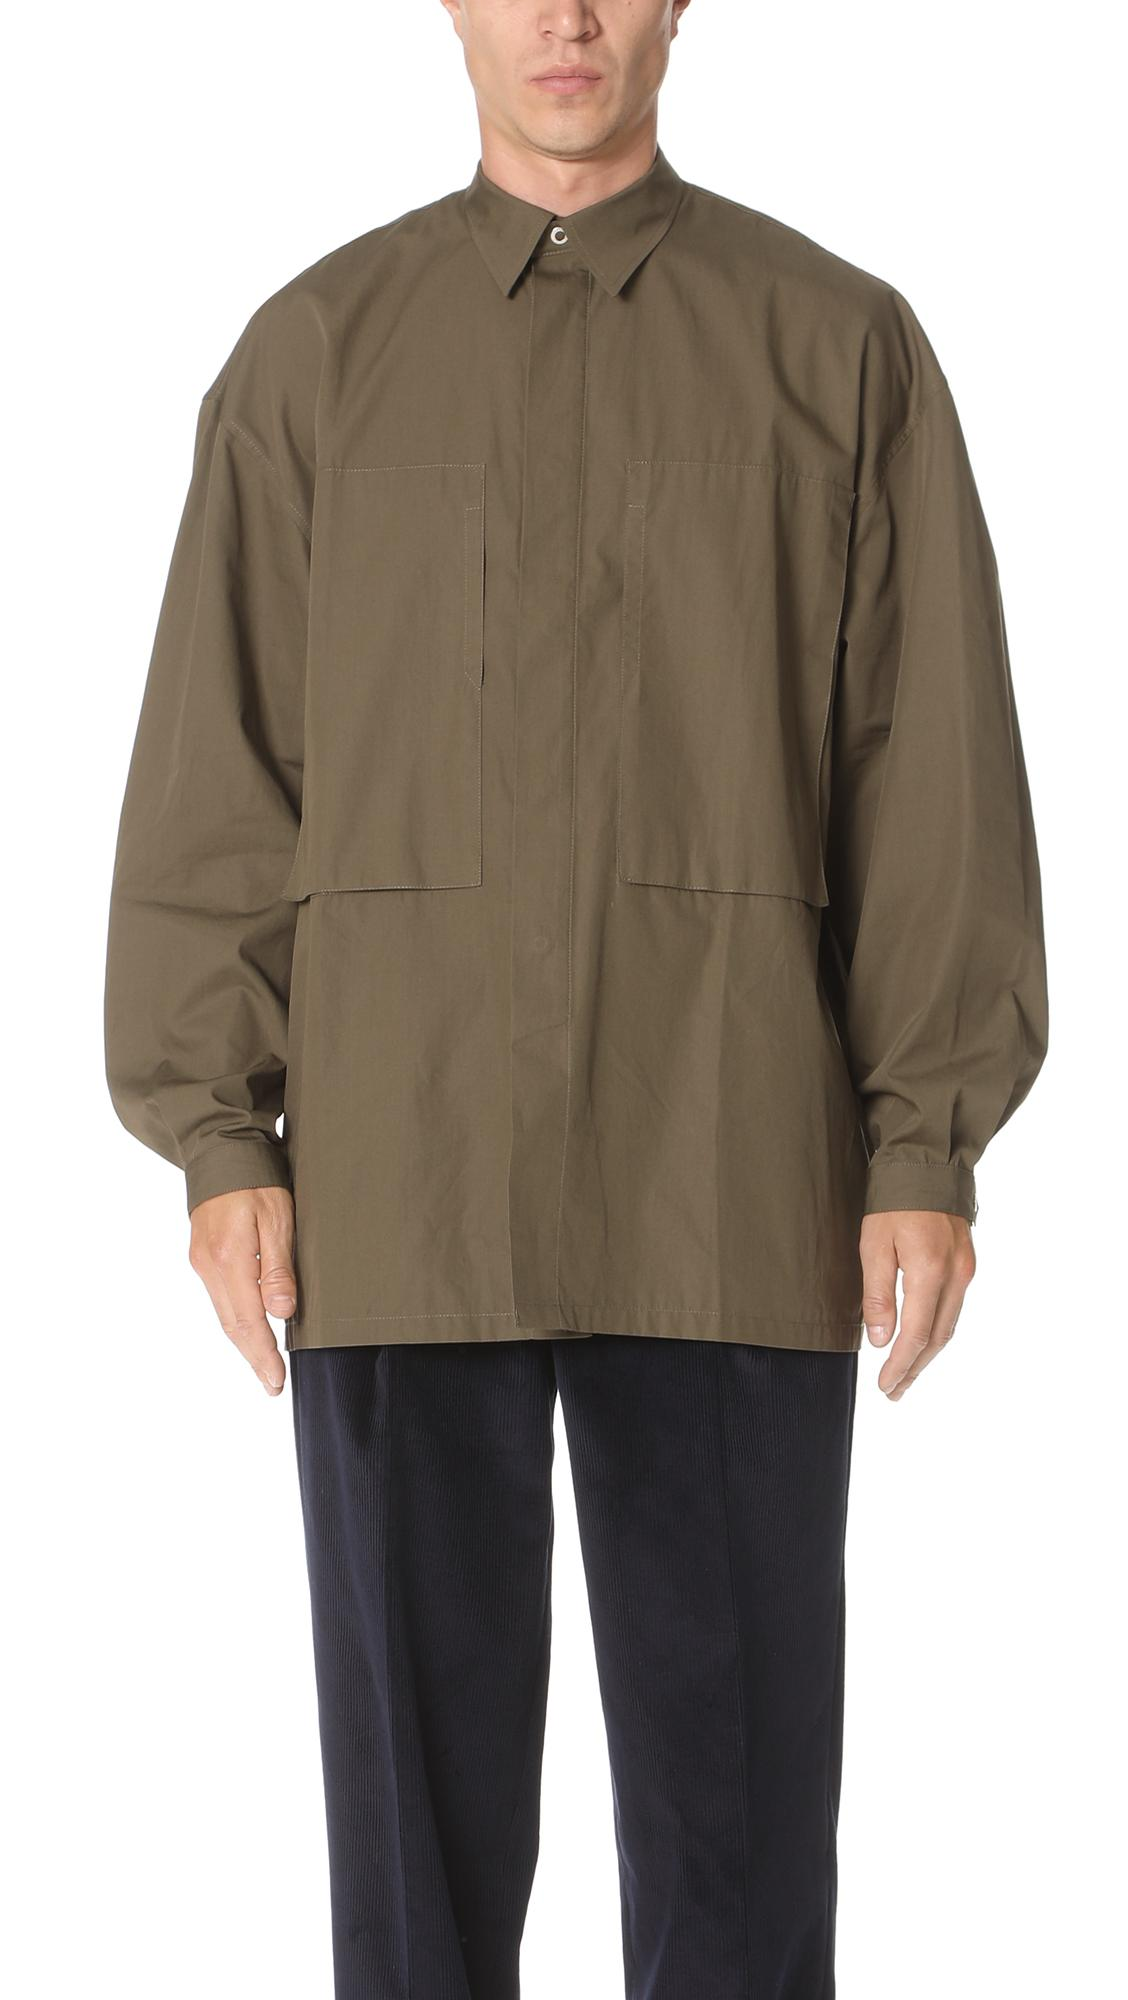 E. Tautz Deep Pocket Long Sleeve Shirt In Army